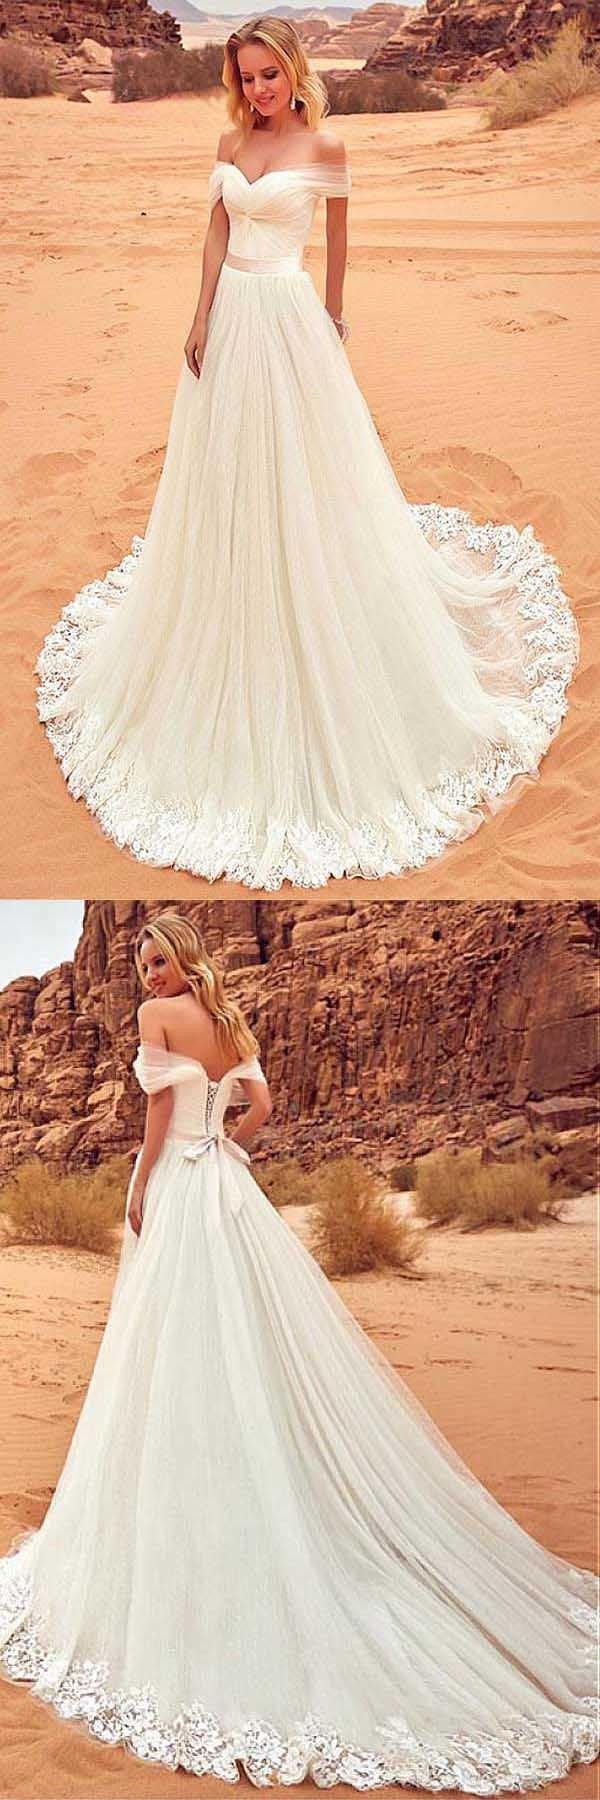 Tulle Off-the-shoulder Neckline Wedding Dress With Lace Appliques WD201 Pgmdress Sold by Pgmdress Welcome to our store.Thanks for your interested in our gowns.We accept paypal payment. We could make the dresses according to the pictures came from you,we welcome retail and wholesale.Service… Mikenna Goldensmith Mikenna Goldensmith saved to Mikennas Wedding Tulle Off-the-shoulder Neckline Wedding Dress With Lace Appliques WD201 #wedding #dress #tulle #sweetheart